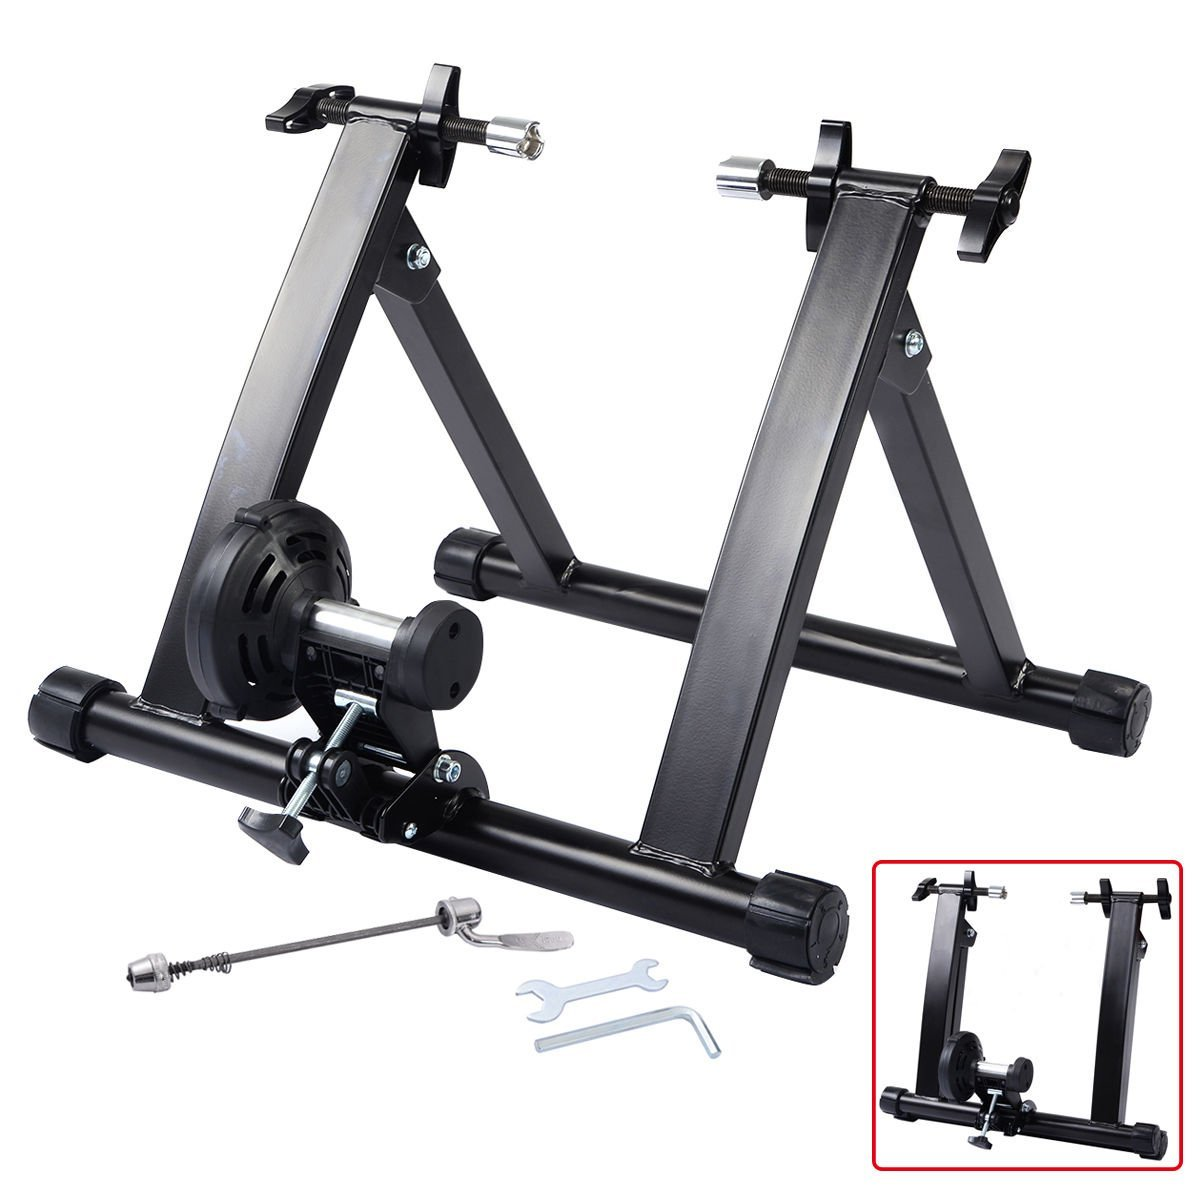 Goplus Portable Magnet Steel Bike/Bicycle Indoor Exercise Trainer Stand by Goplus (Image #3)